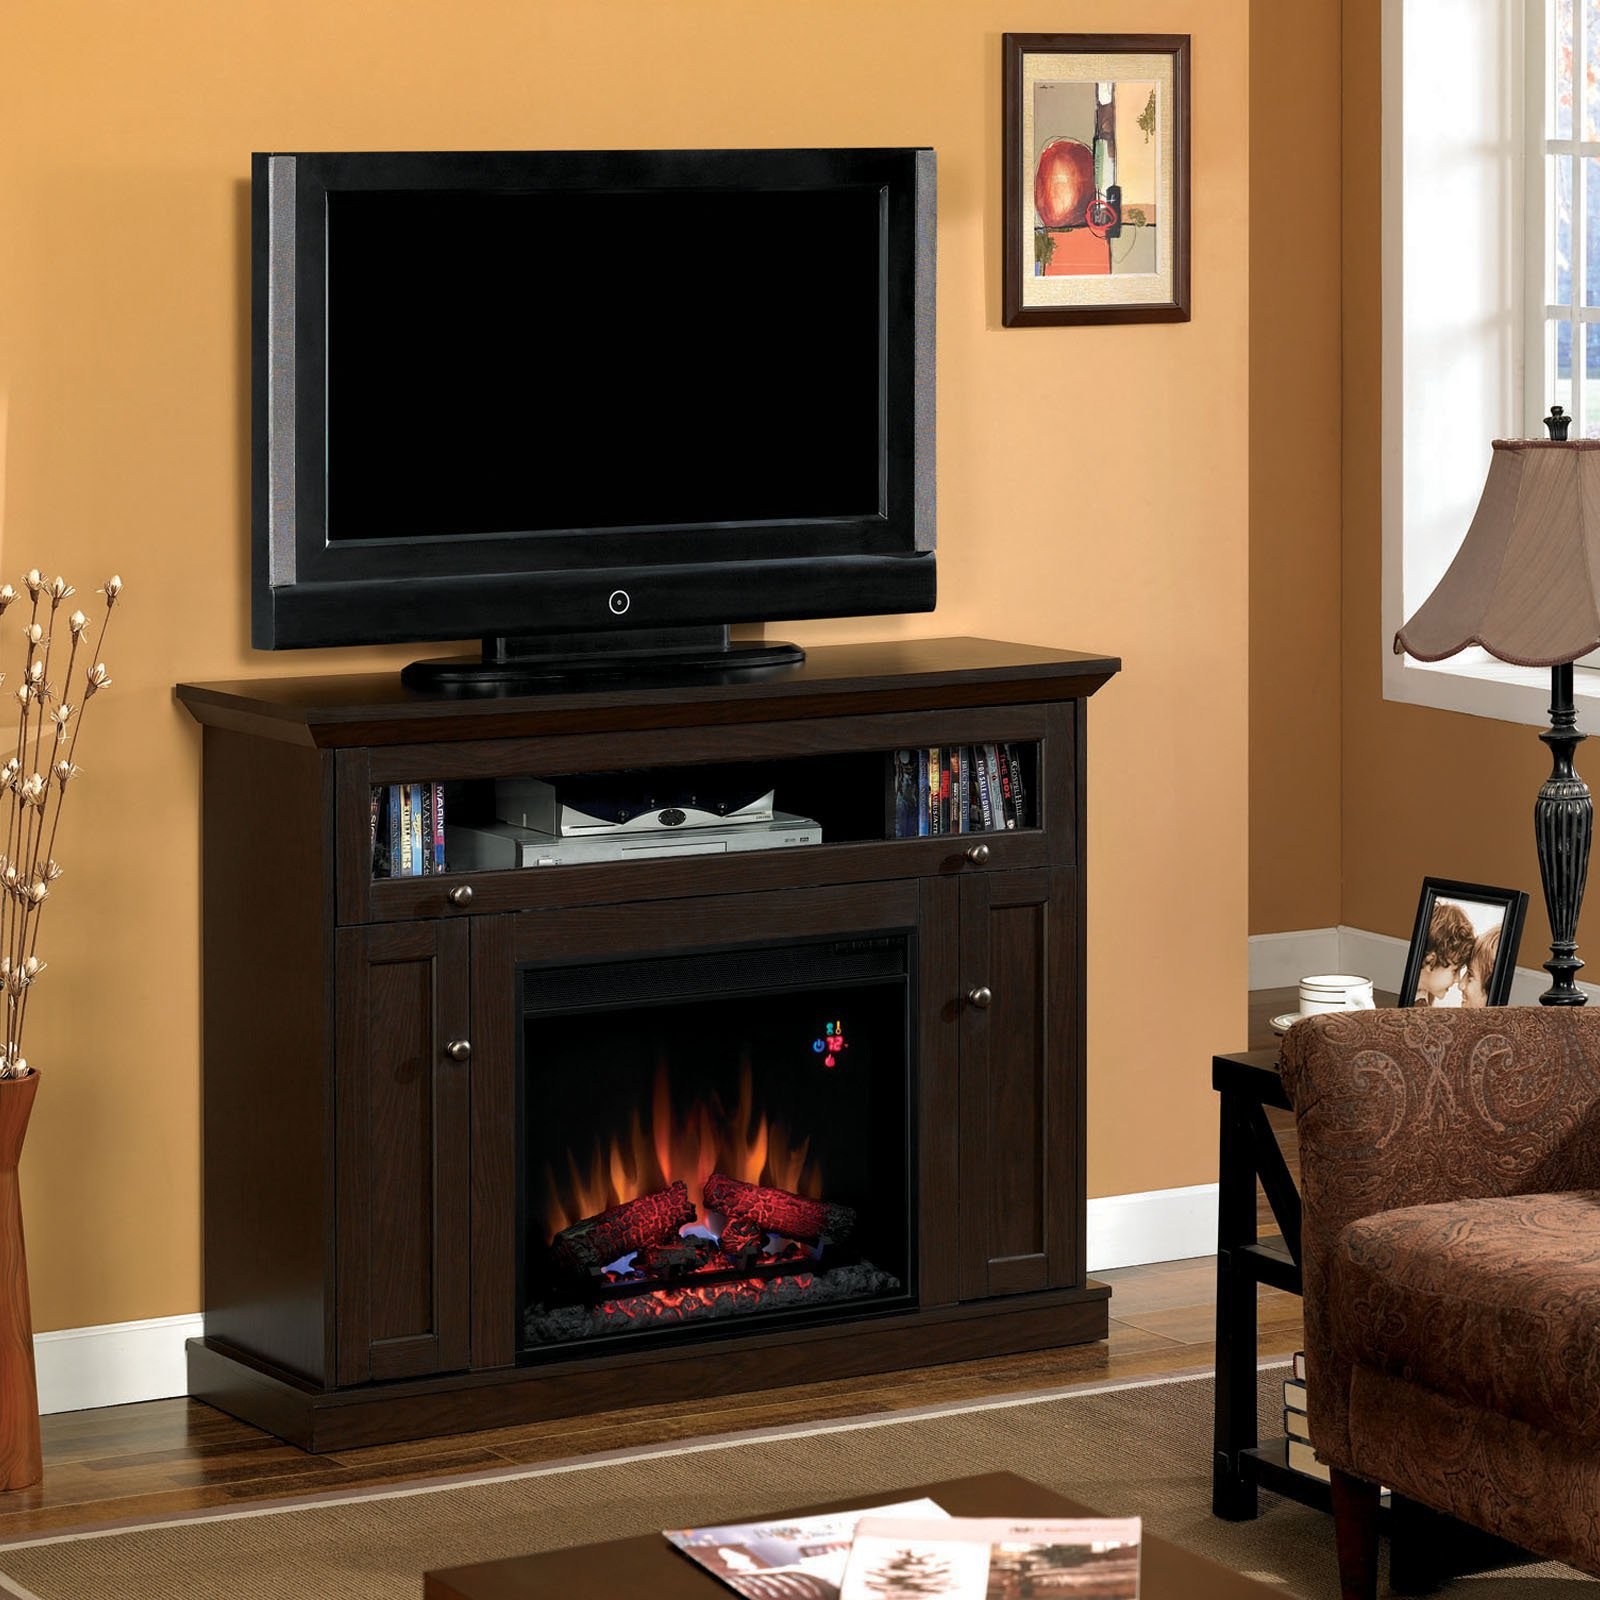 Classic Flame Windsor Infrared Electric Fireplace Entertainment Center - Cherry